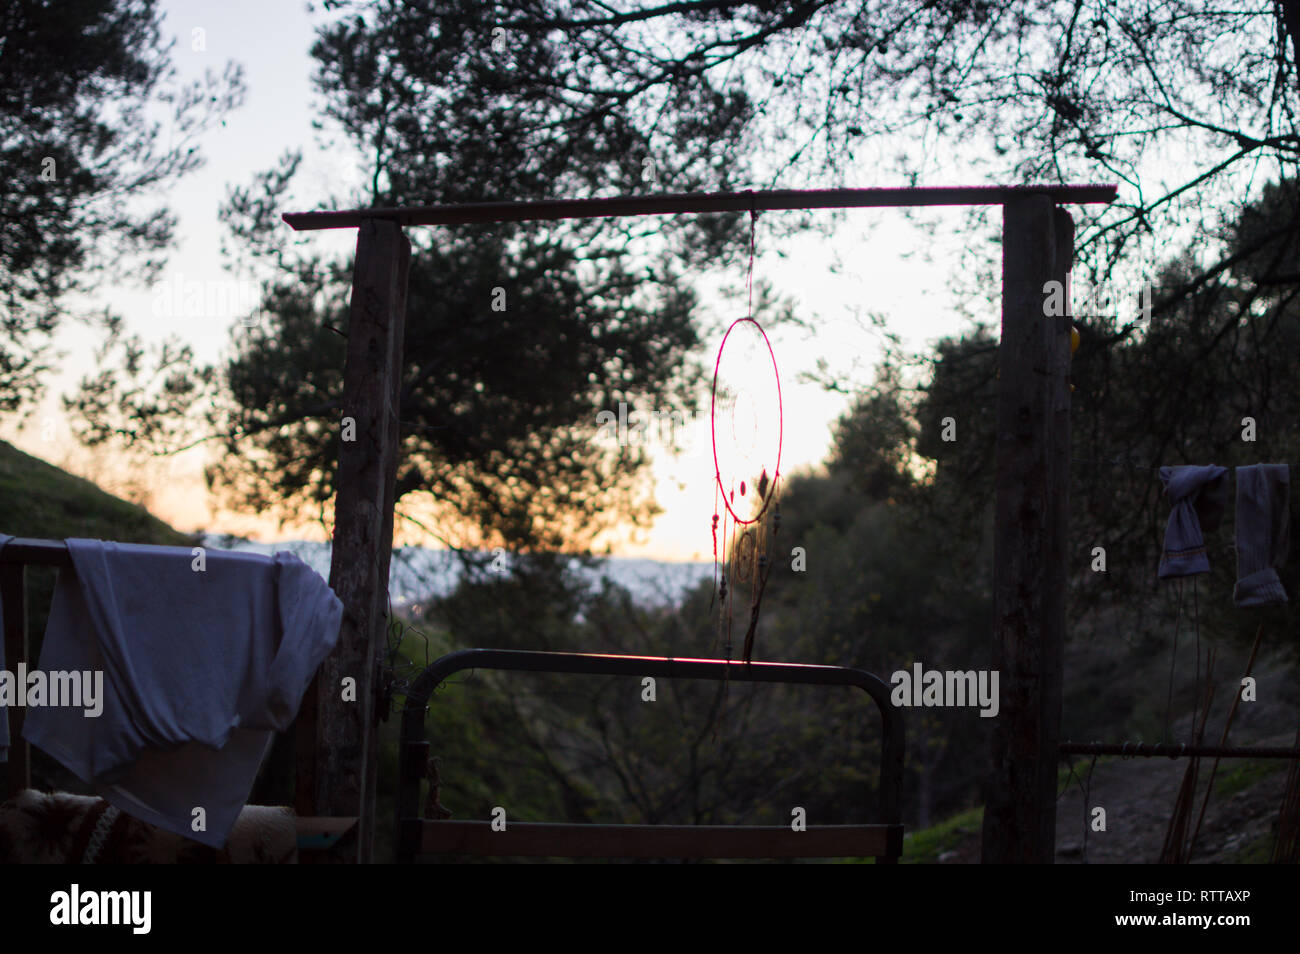 Dreamcatcher at one of the Sacromonte Caves in Granada, Spain - Stock Image